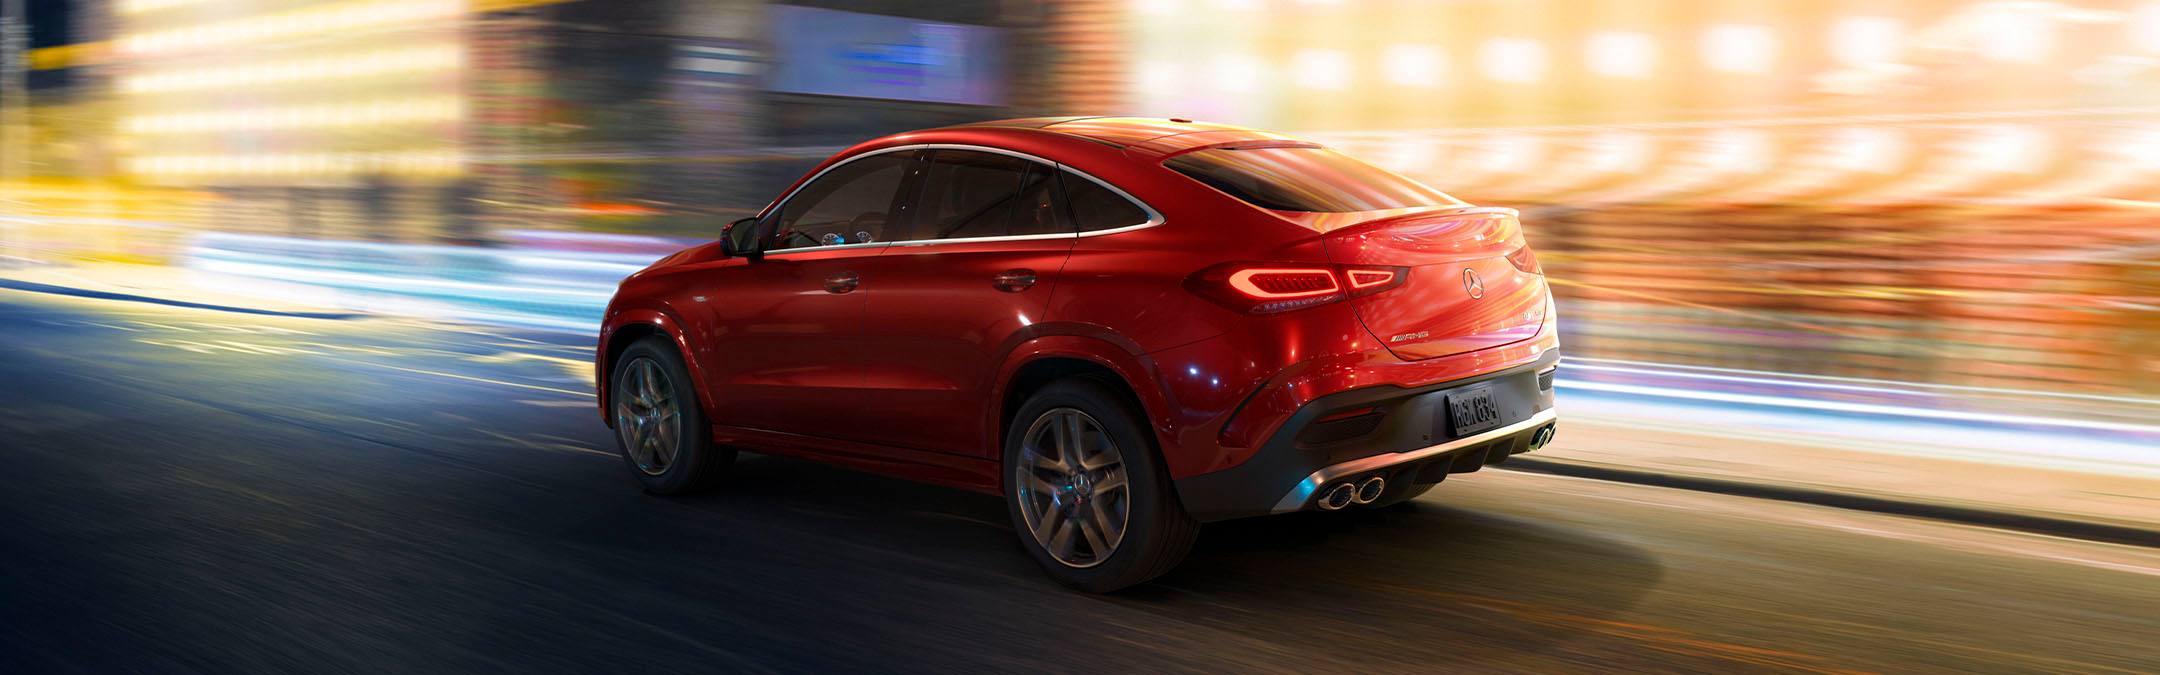 2021 Amg Gle Coupe Mercedes Benz